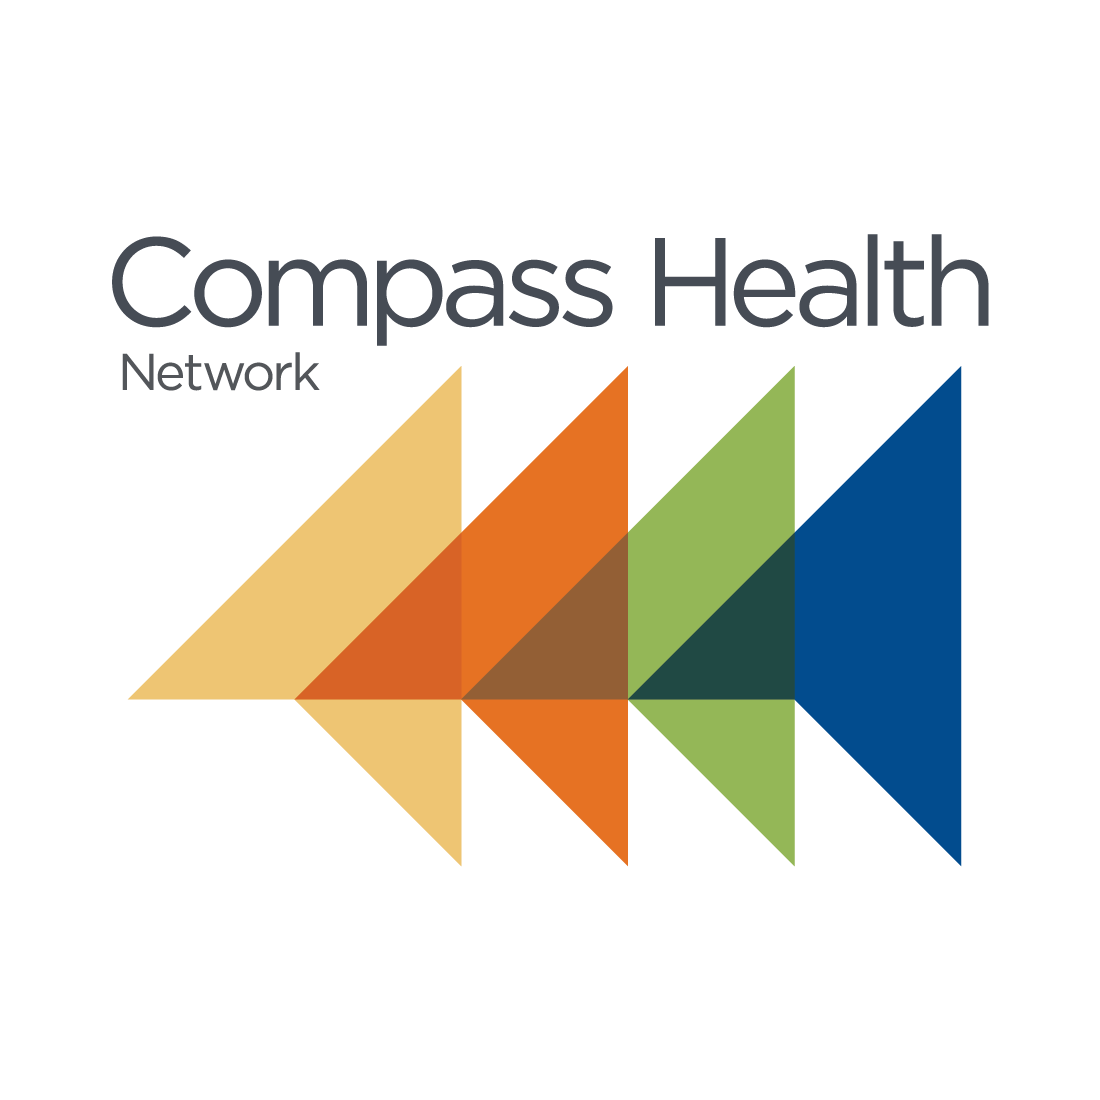 Pam McCaslin, Compass Health Network